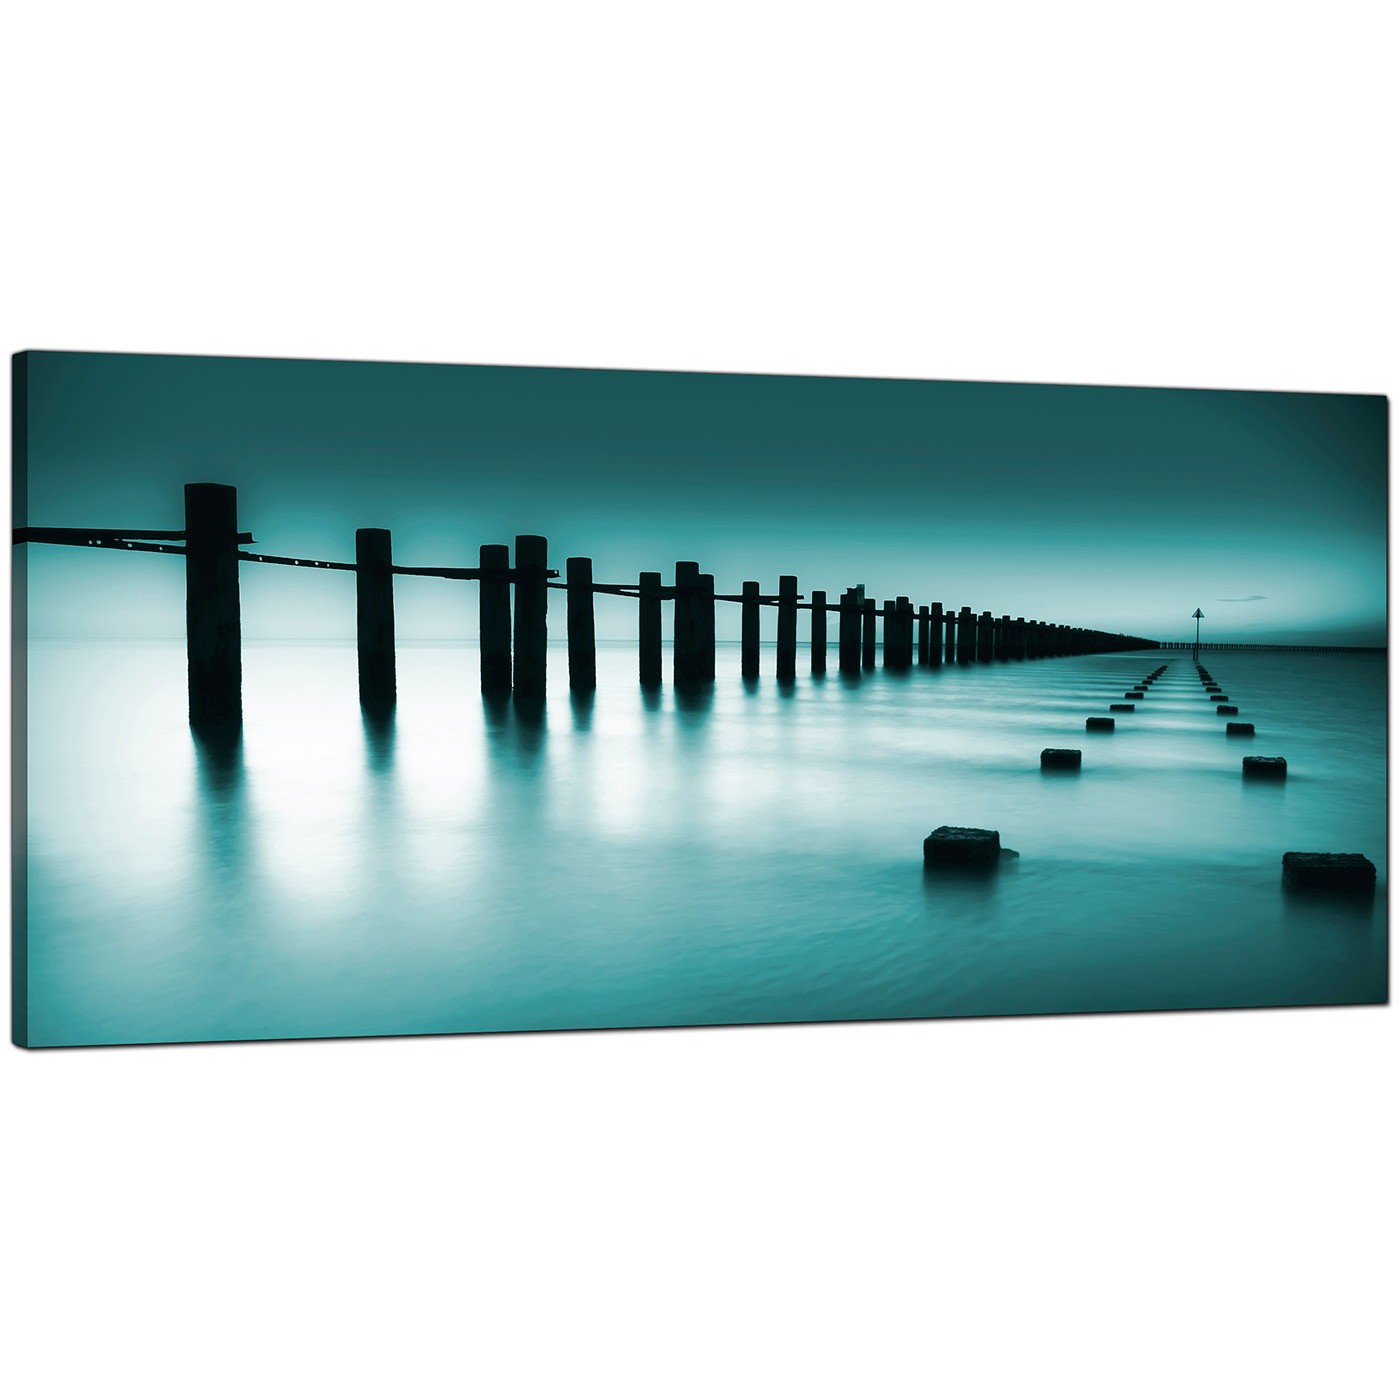 Cheap Teal Canvas Prints of the Sea : cheap teal canvas art uk landscape panoramic 10891 from www.wallfillers.co.uk size 1400 x 1400 jpeg 131kB